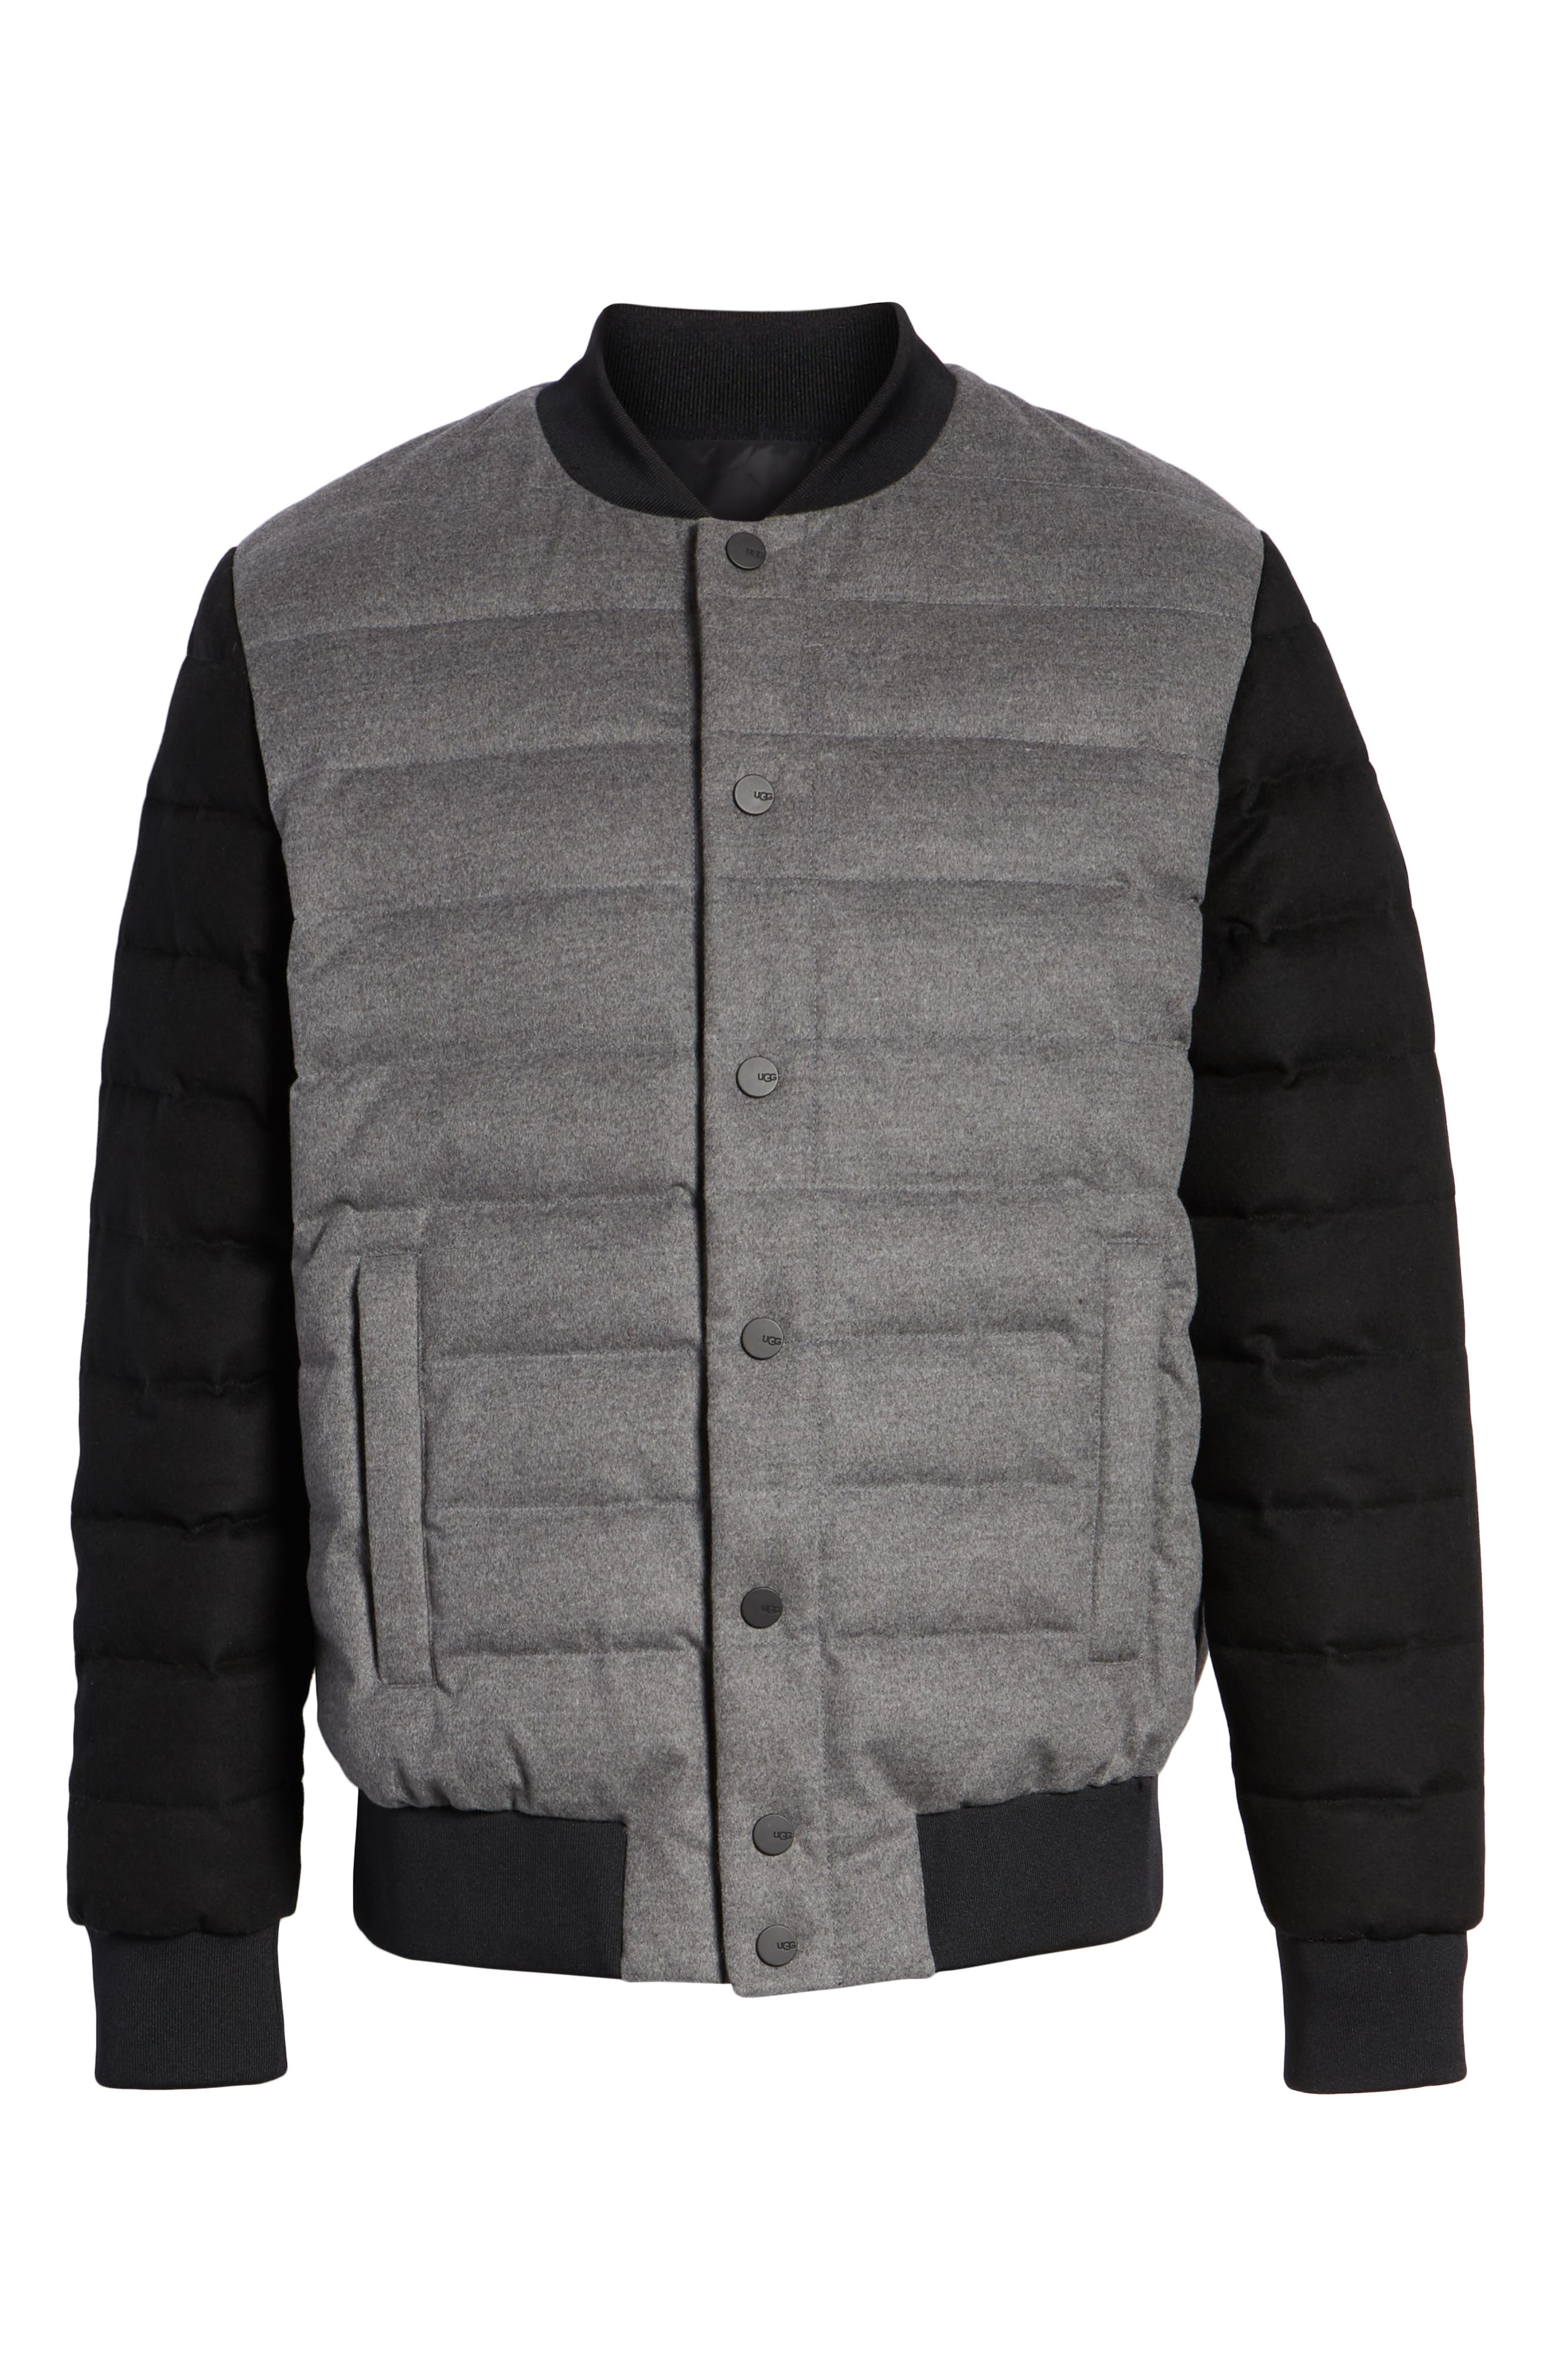 Gavin Down Bomber Jacket,                             Alternate thumbnail 5, color,                             MEDIUM HEATHER GREY/ BLACK